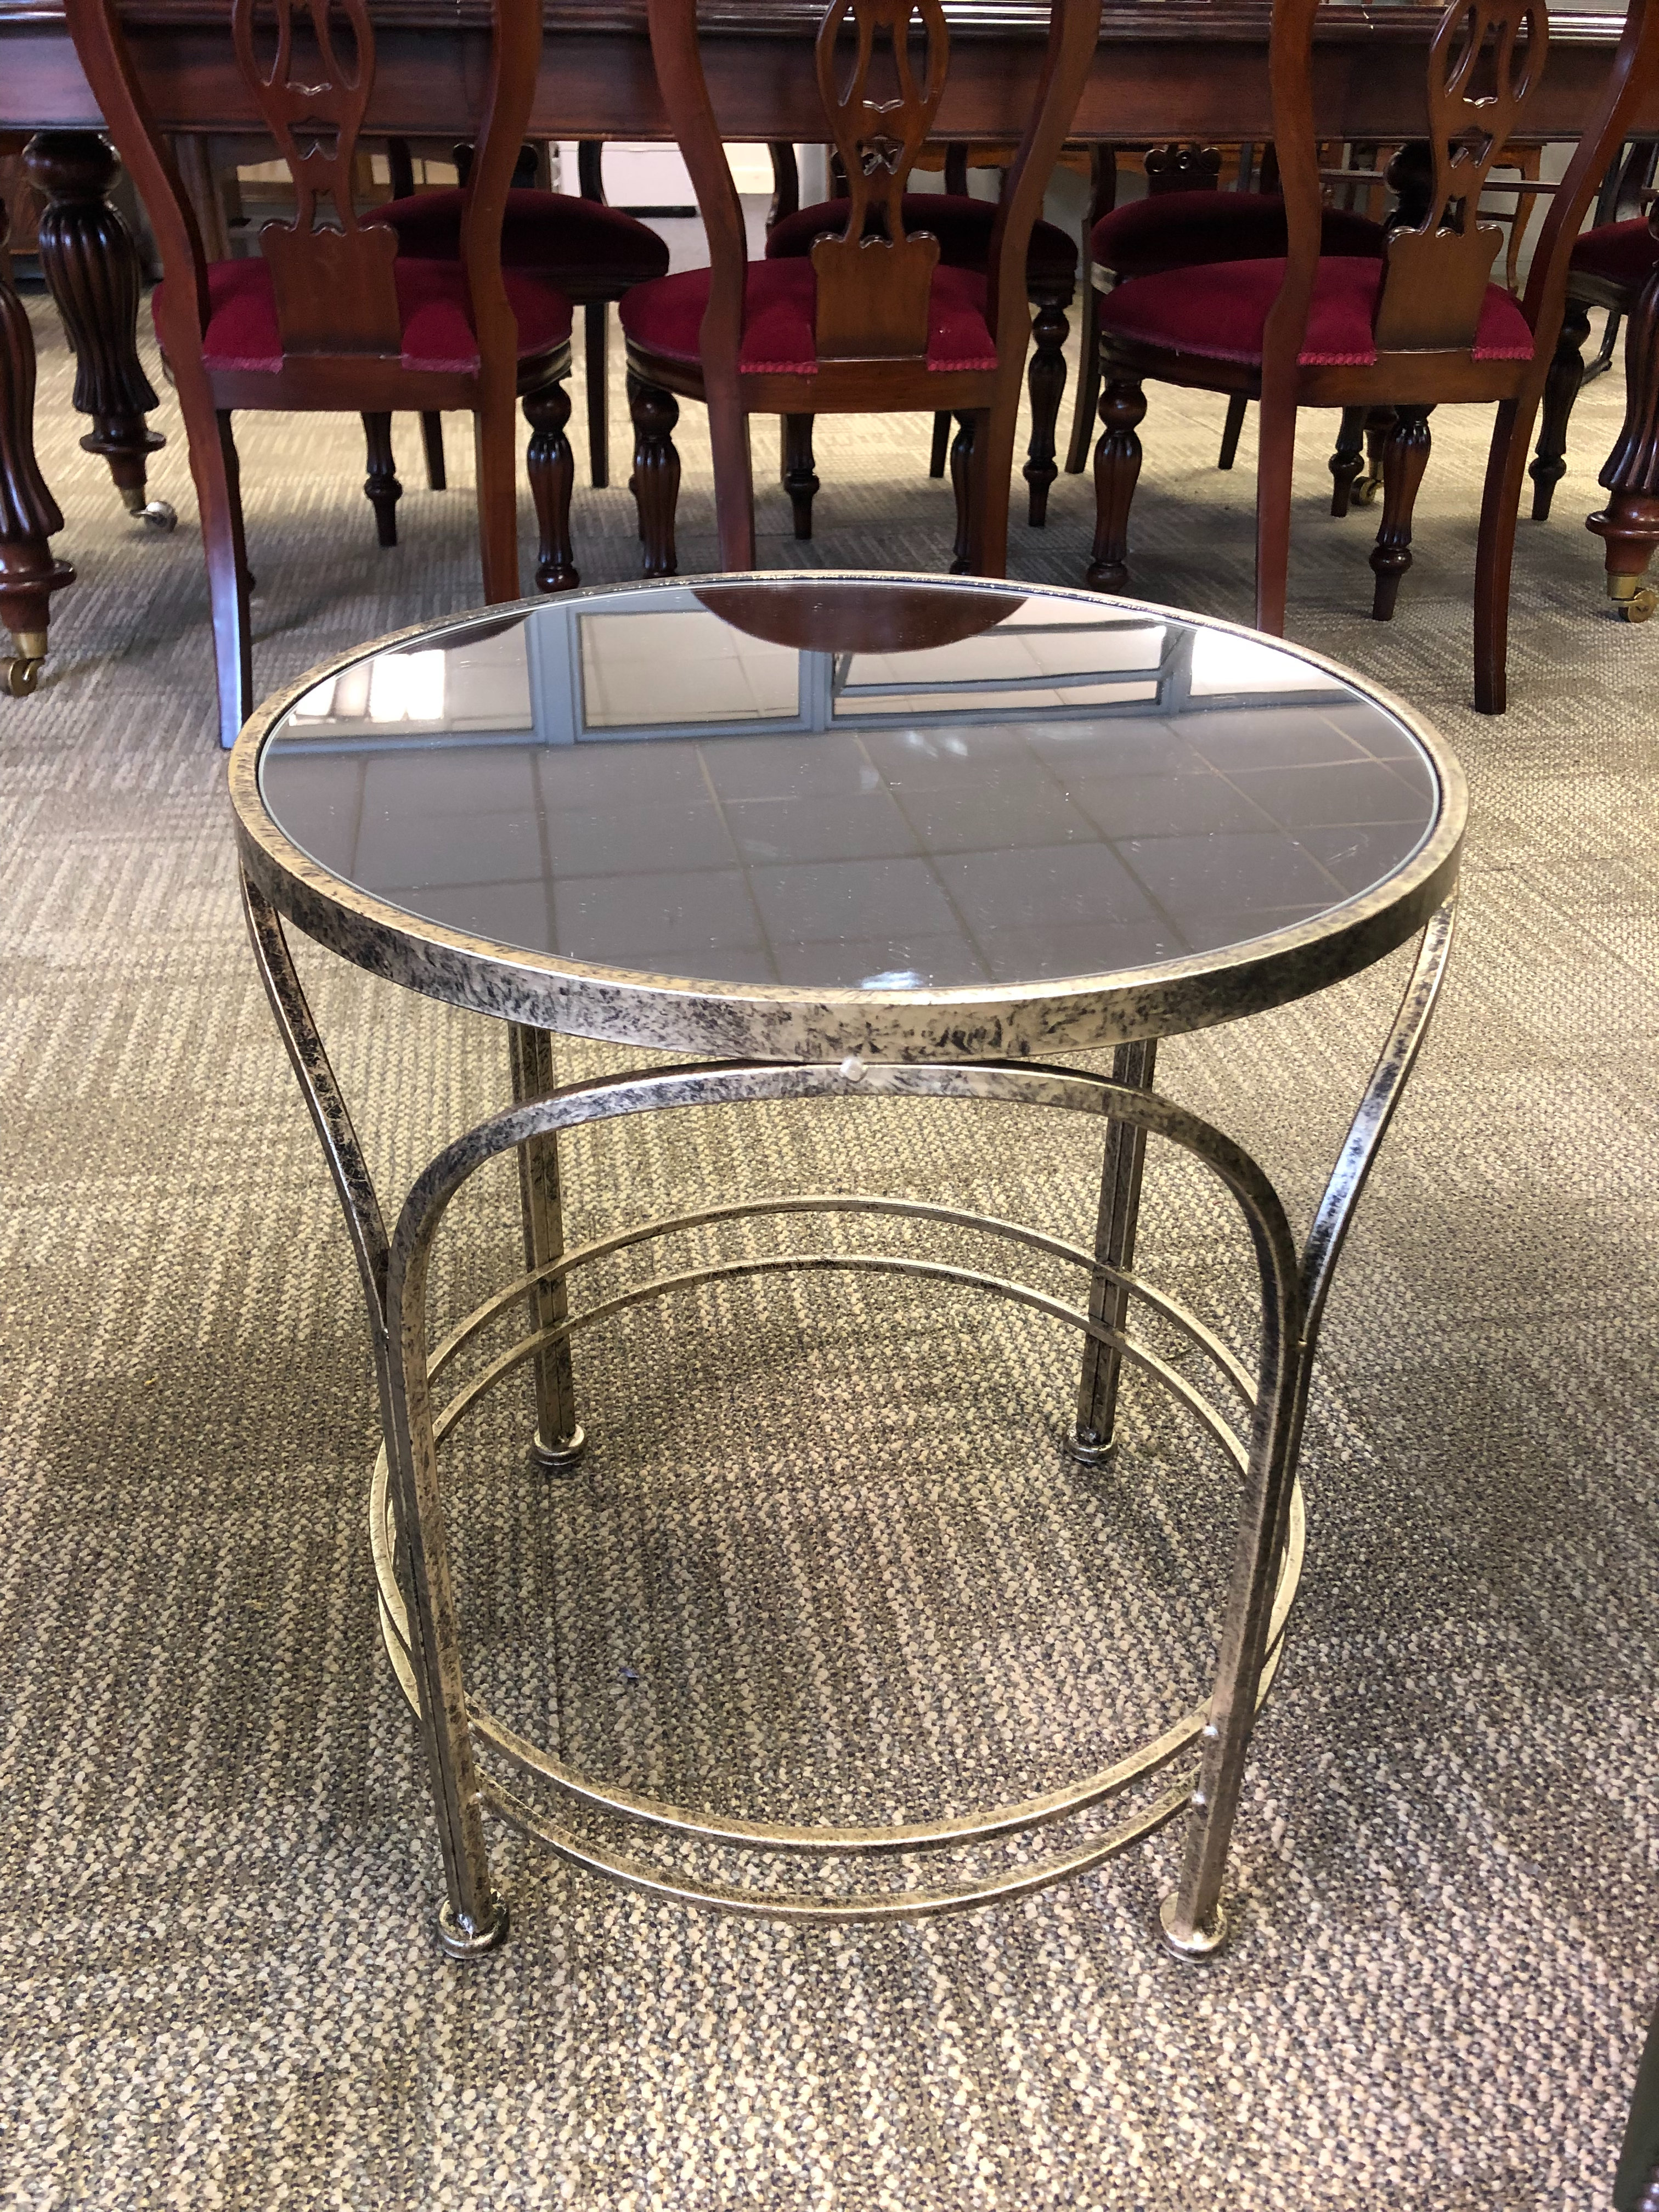 Smalle Sidetable 25 Cm.Side Table Small Jps Furniture